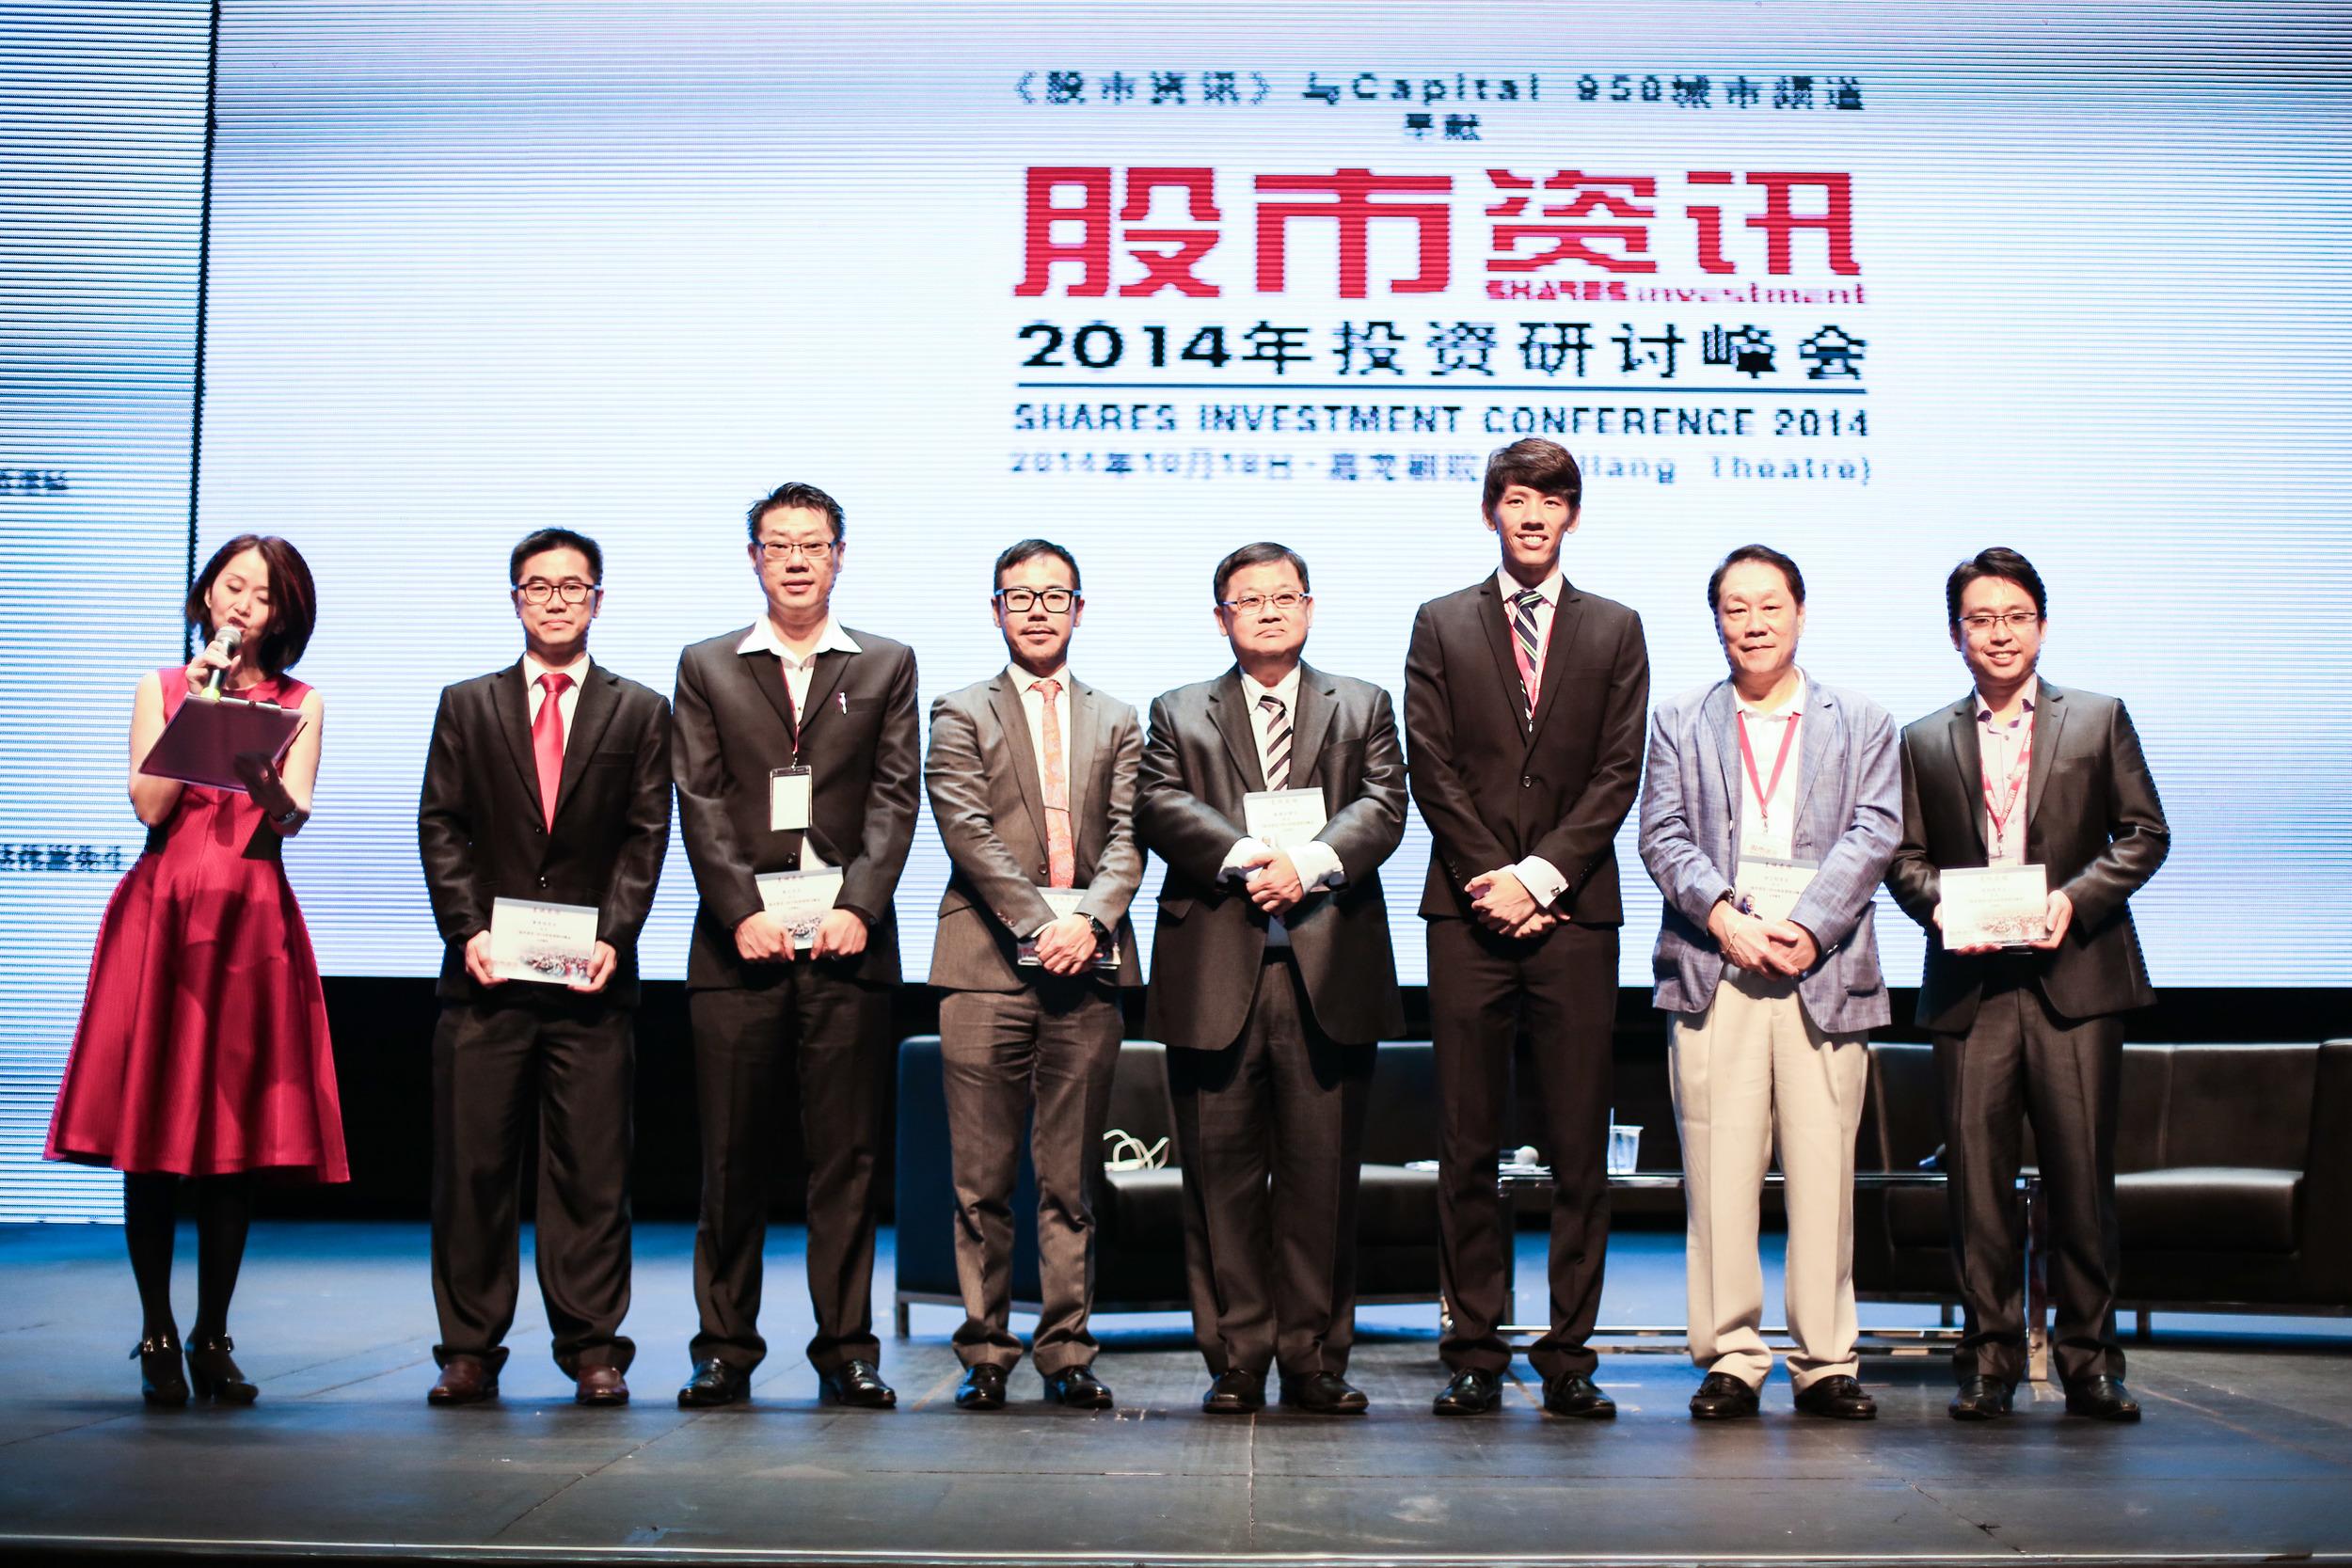 Thought Leaders At Shares Investment Conference 2014